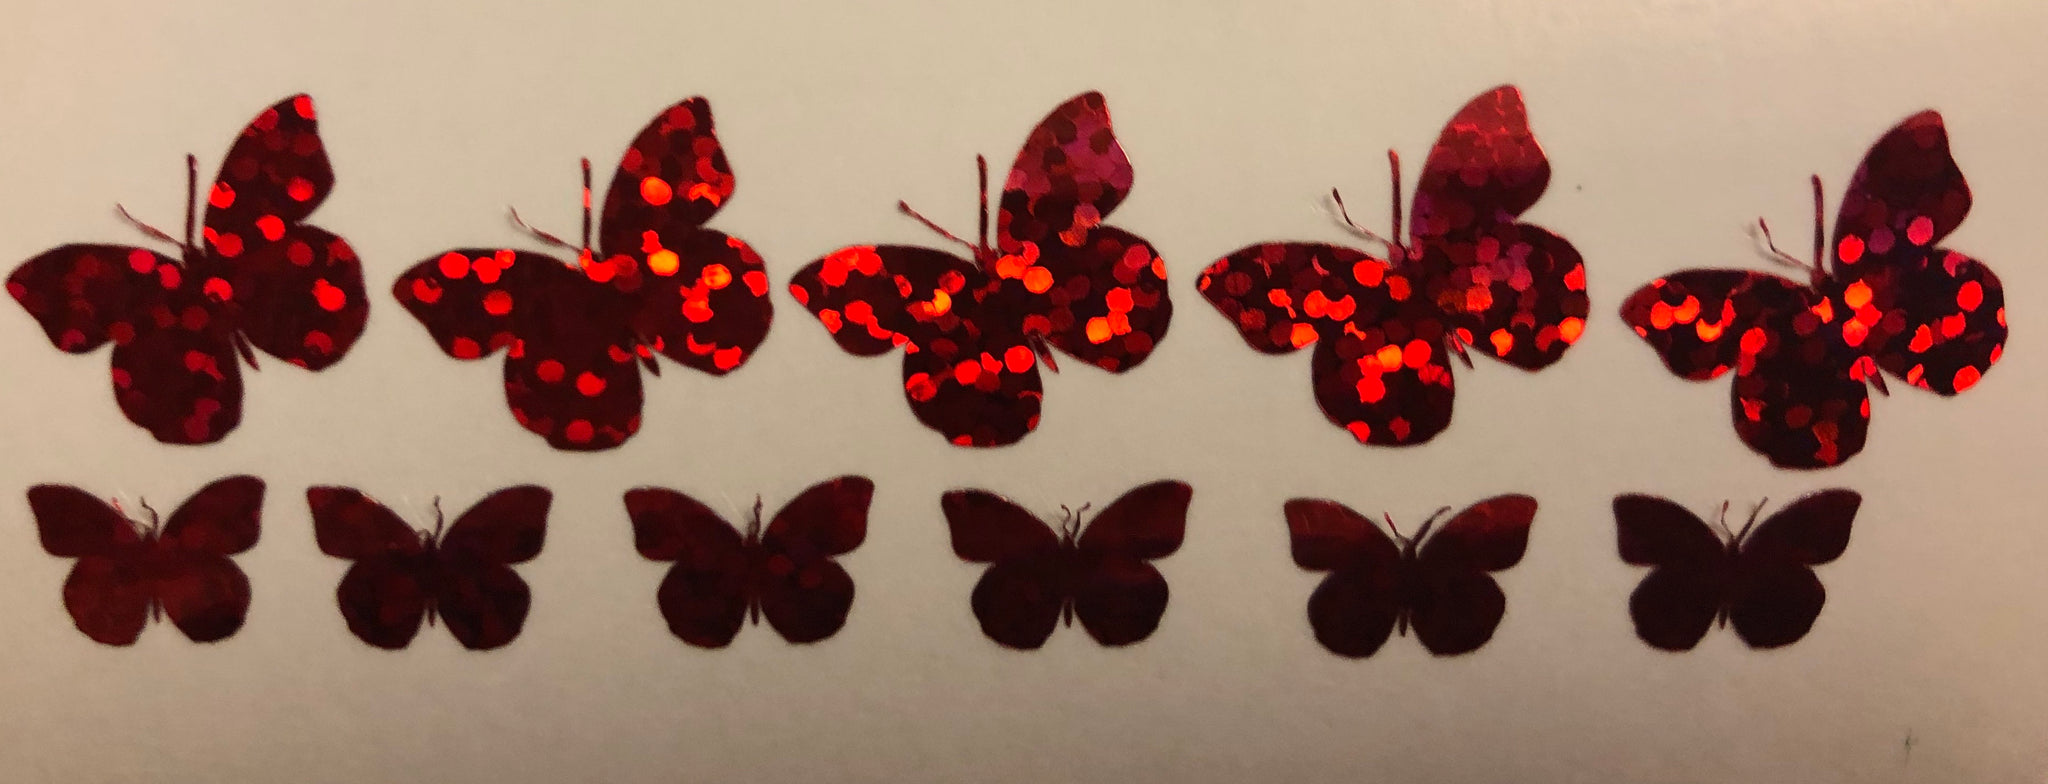 Red holographic butterflies